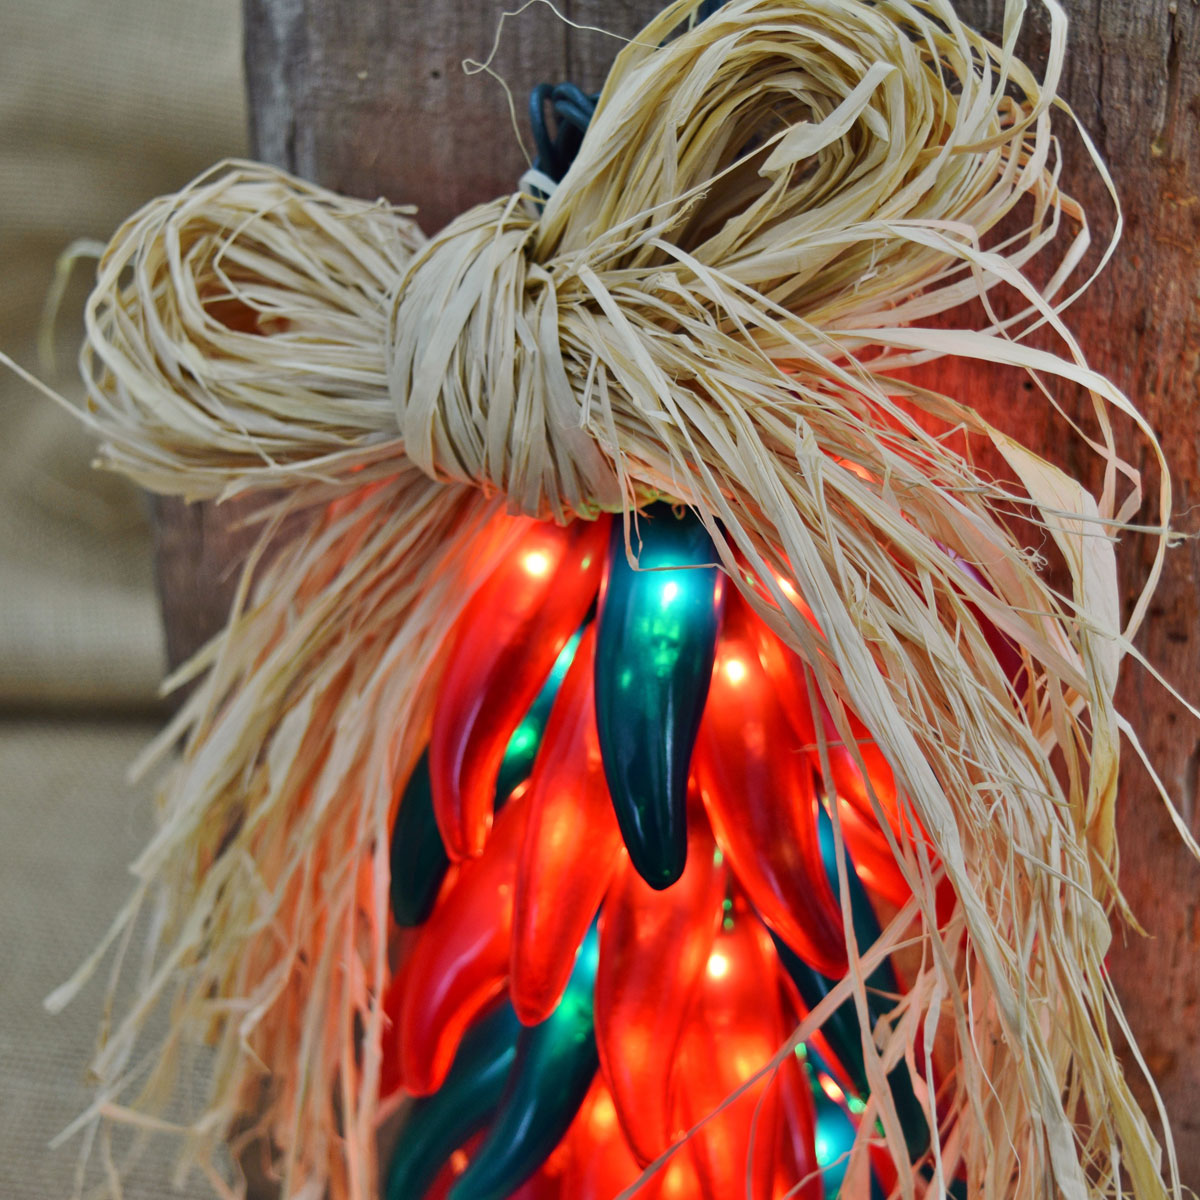 Red Green Chili Pepper Ristra Lights - 10 Lights